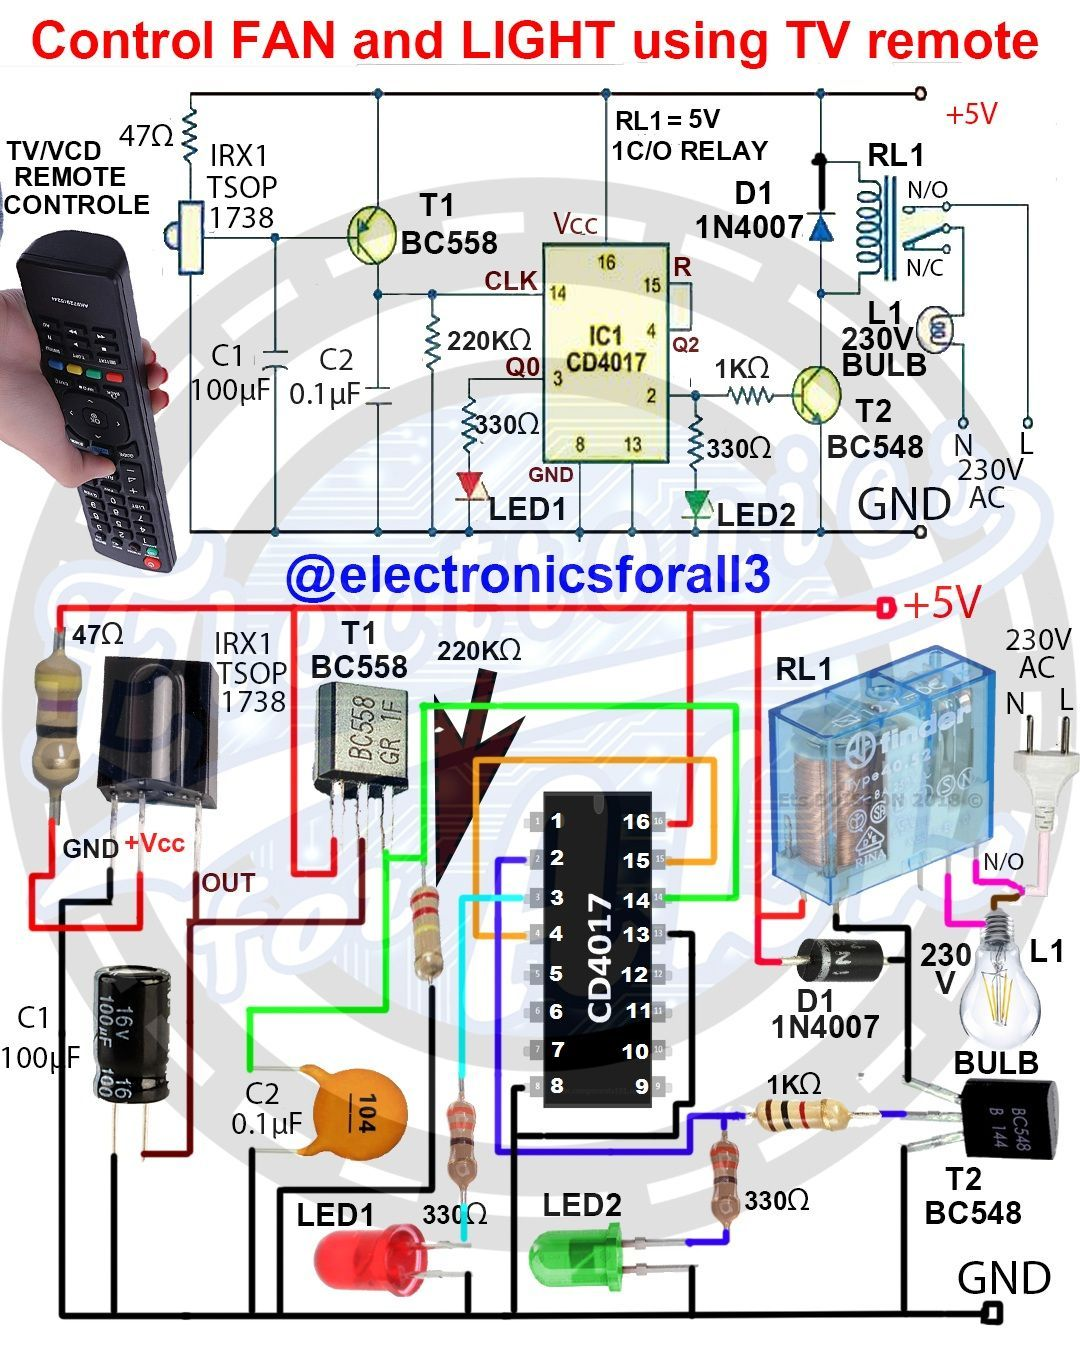 Control FAN and LIGHT using TV remote.